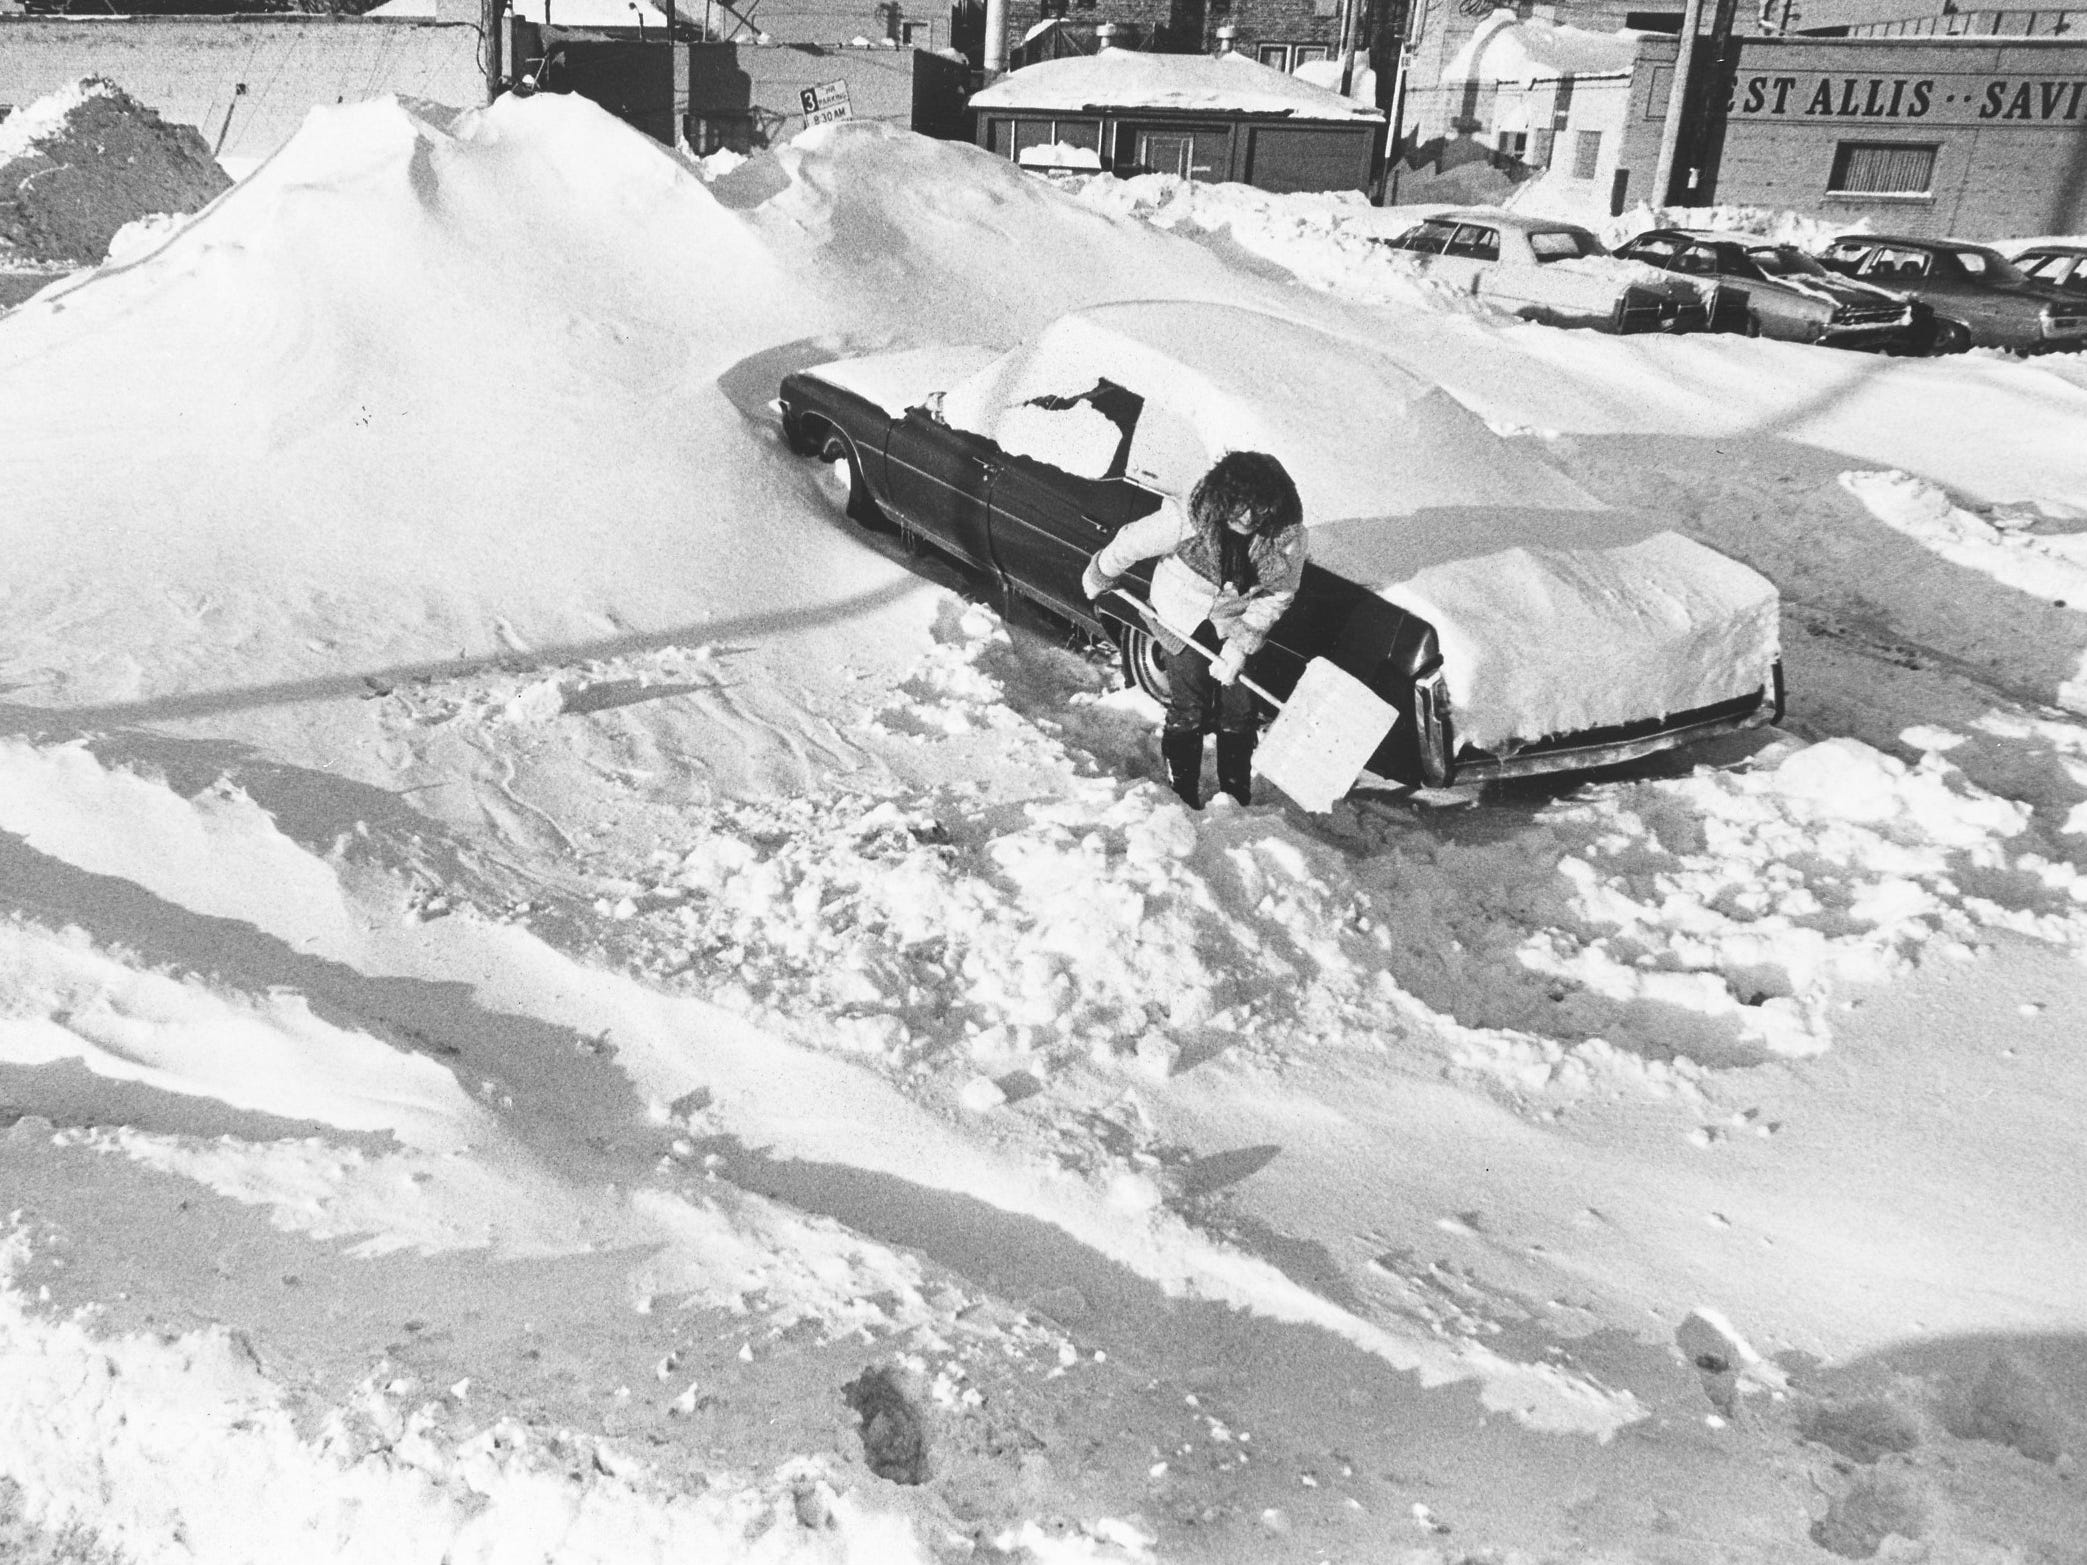 Susie Trudell of West Allis tries to clear a path for her car in a public parking lot at South 74th Street and Greenfield Avenue in West Allis on Jan. 29, 1979. This photo was published in the Jan. 30, 1979, Milwaukee Journal.